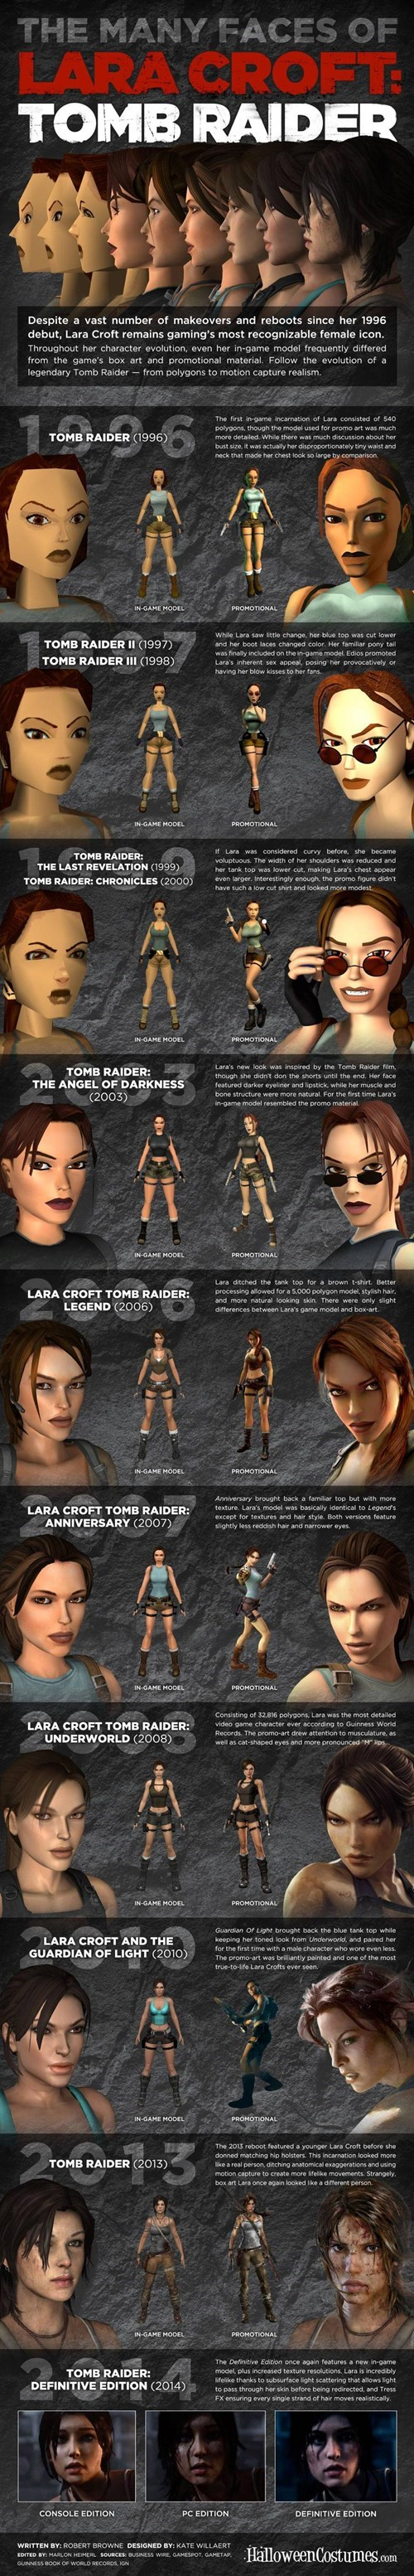 infographics,video games,lara croft,graphjam